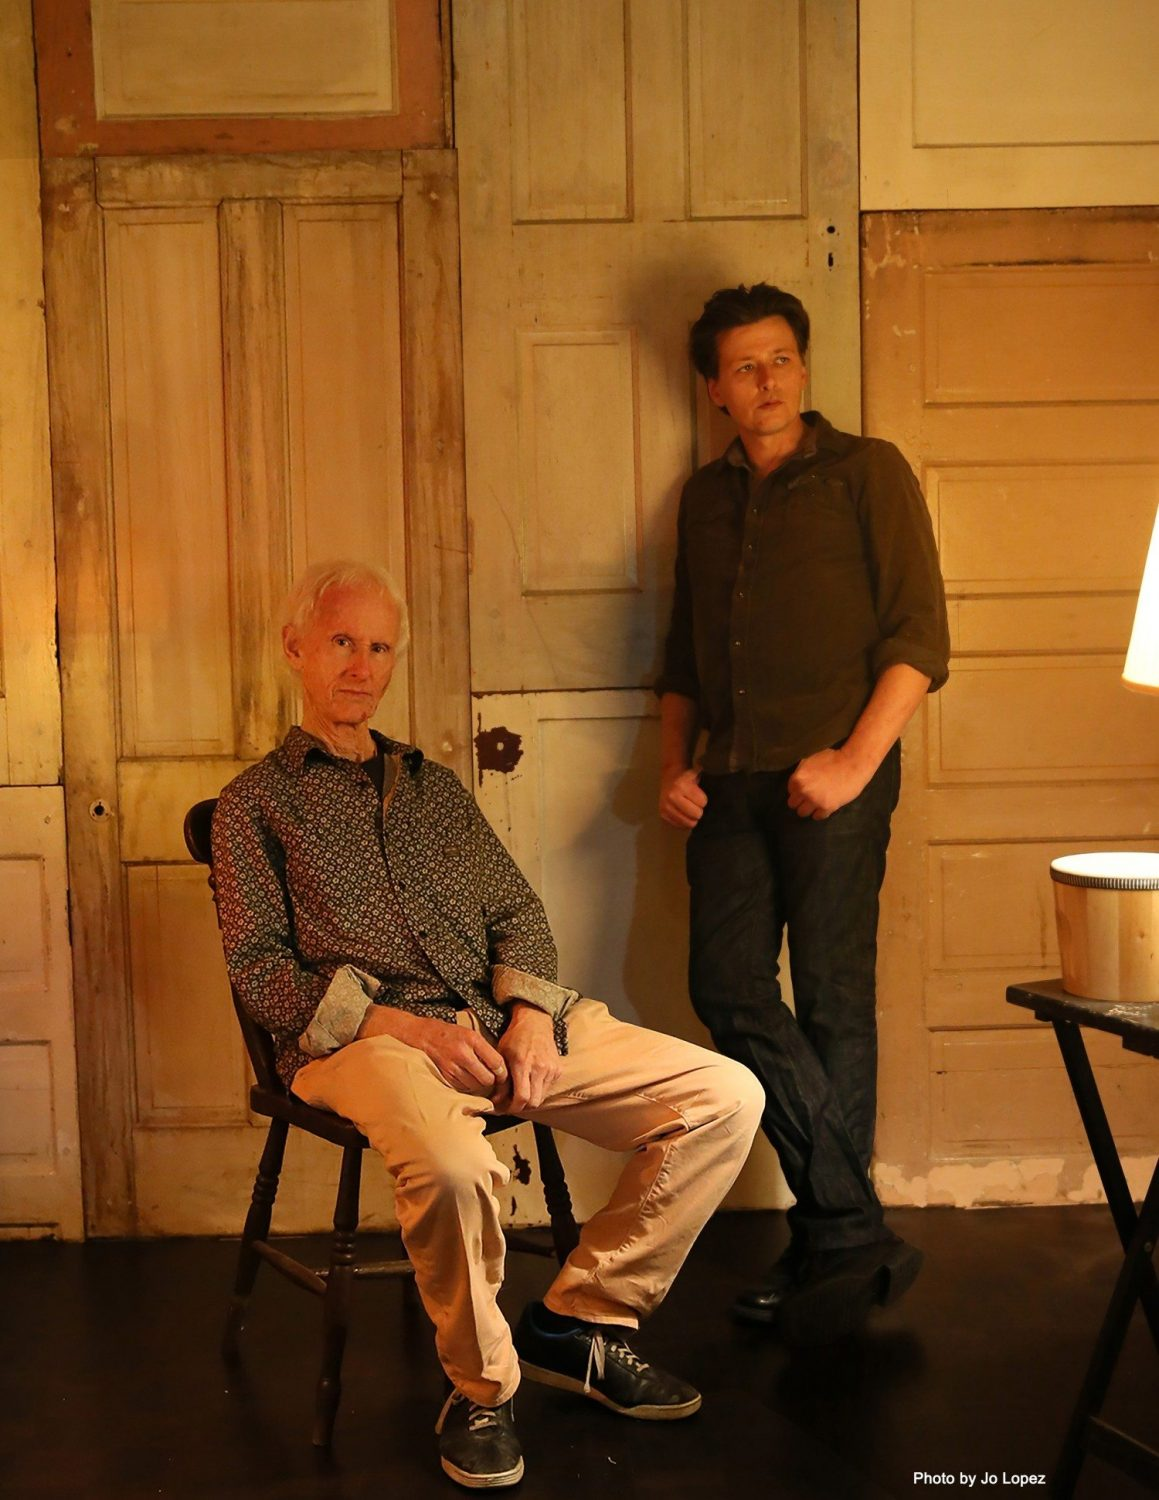 Robby Krieger talks Sept. 25 show at Highline Ballroom, The Doors, New York and more